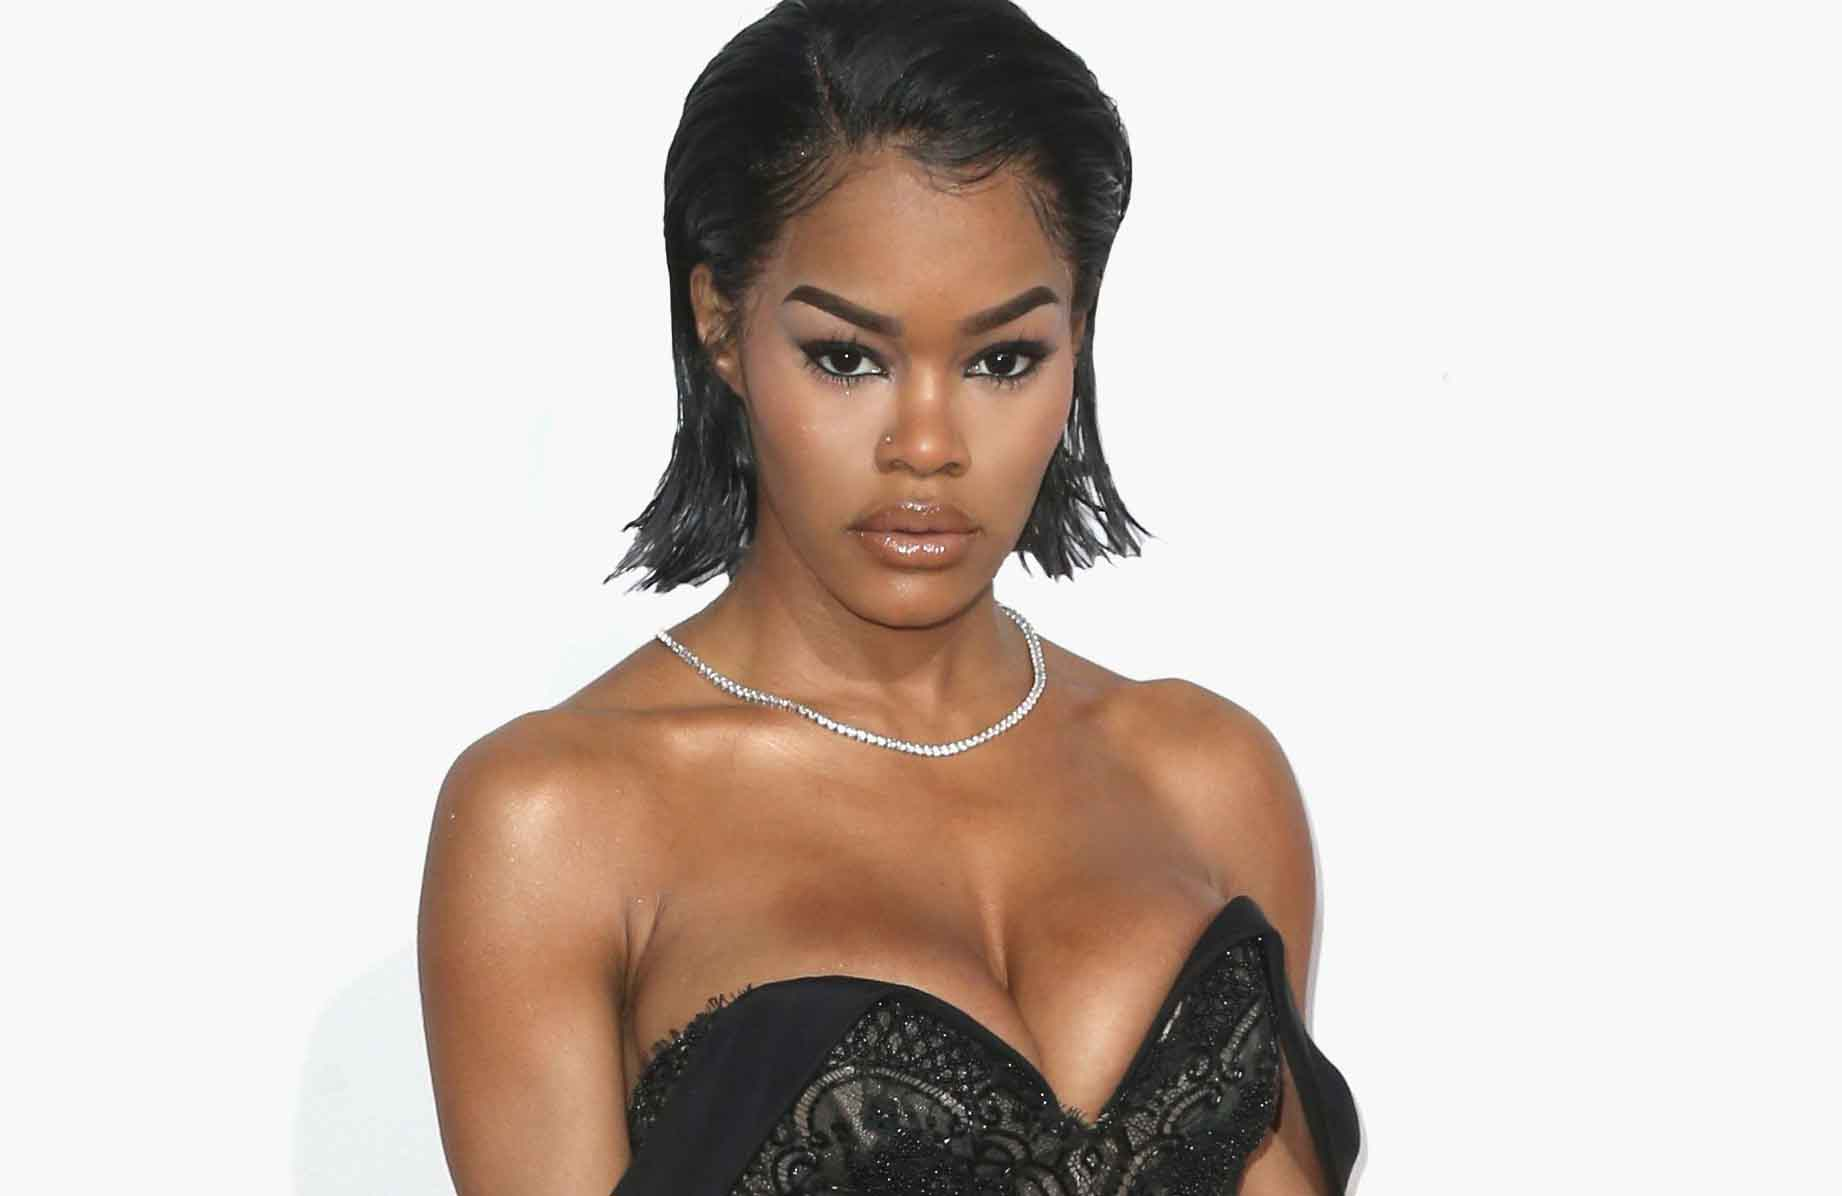 Teyana Taylor Know About Biography Of Teyana Taylor With